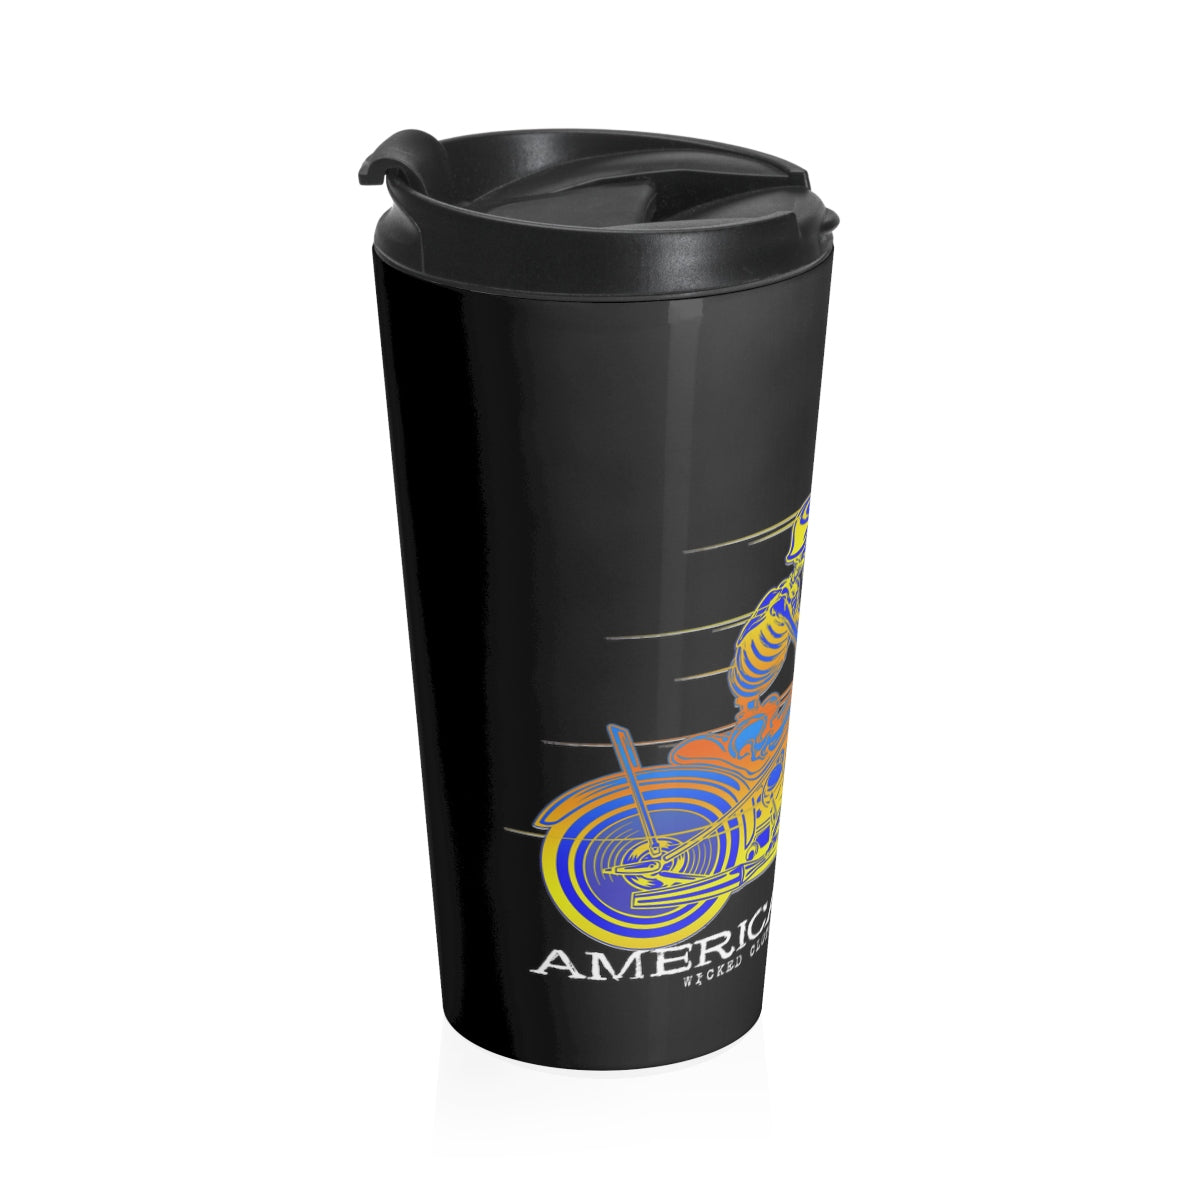 American Outlaw/Stainless Steel Travel Mug